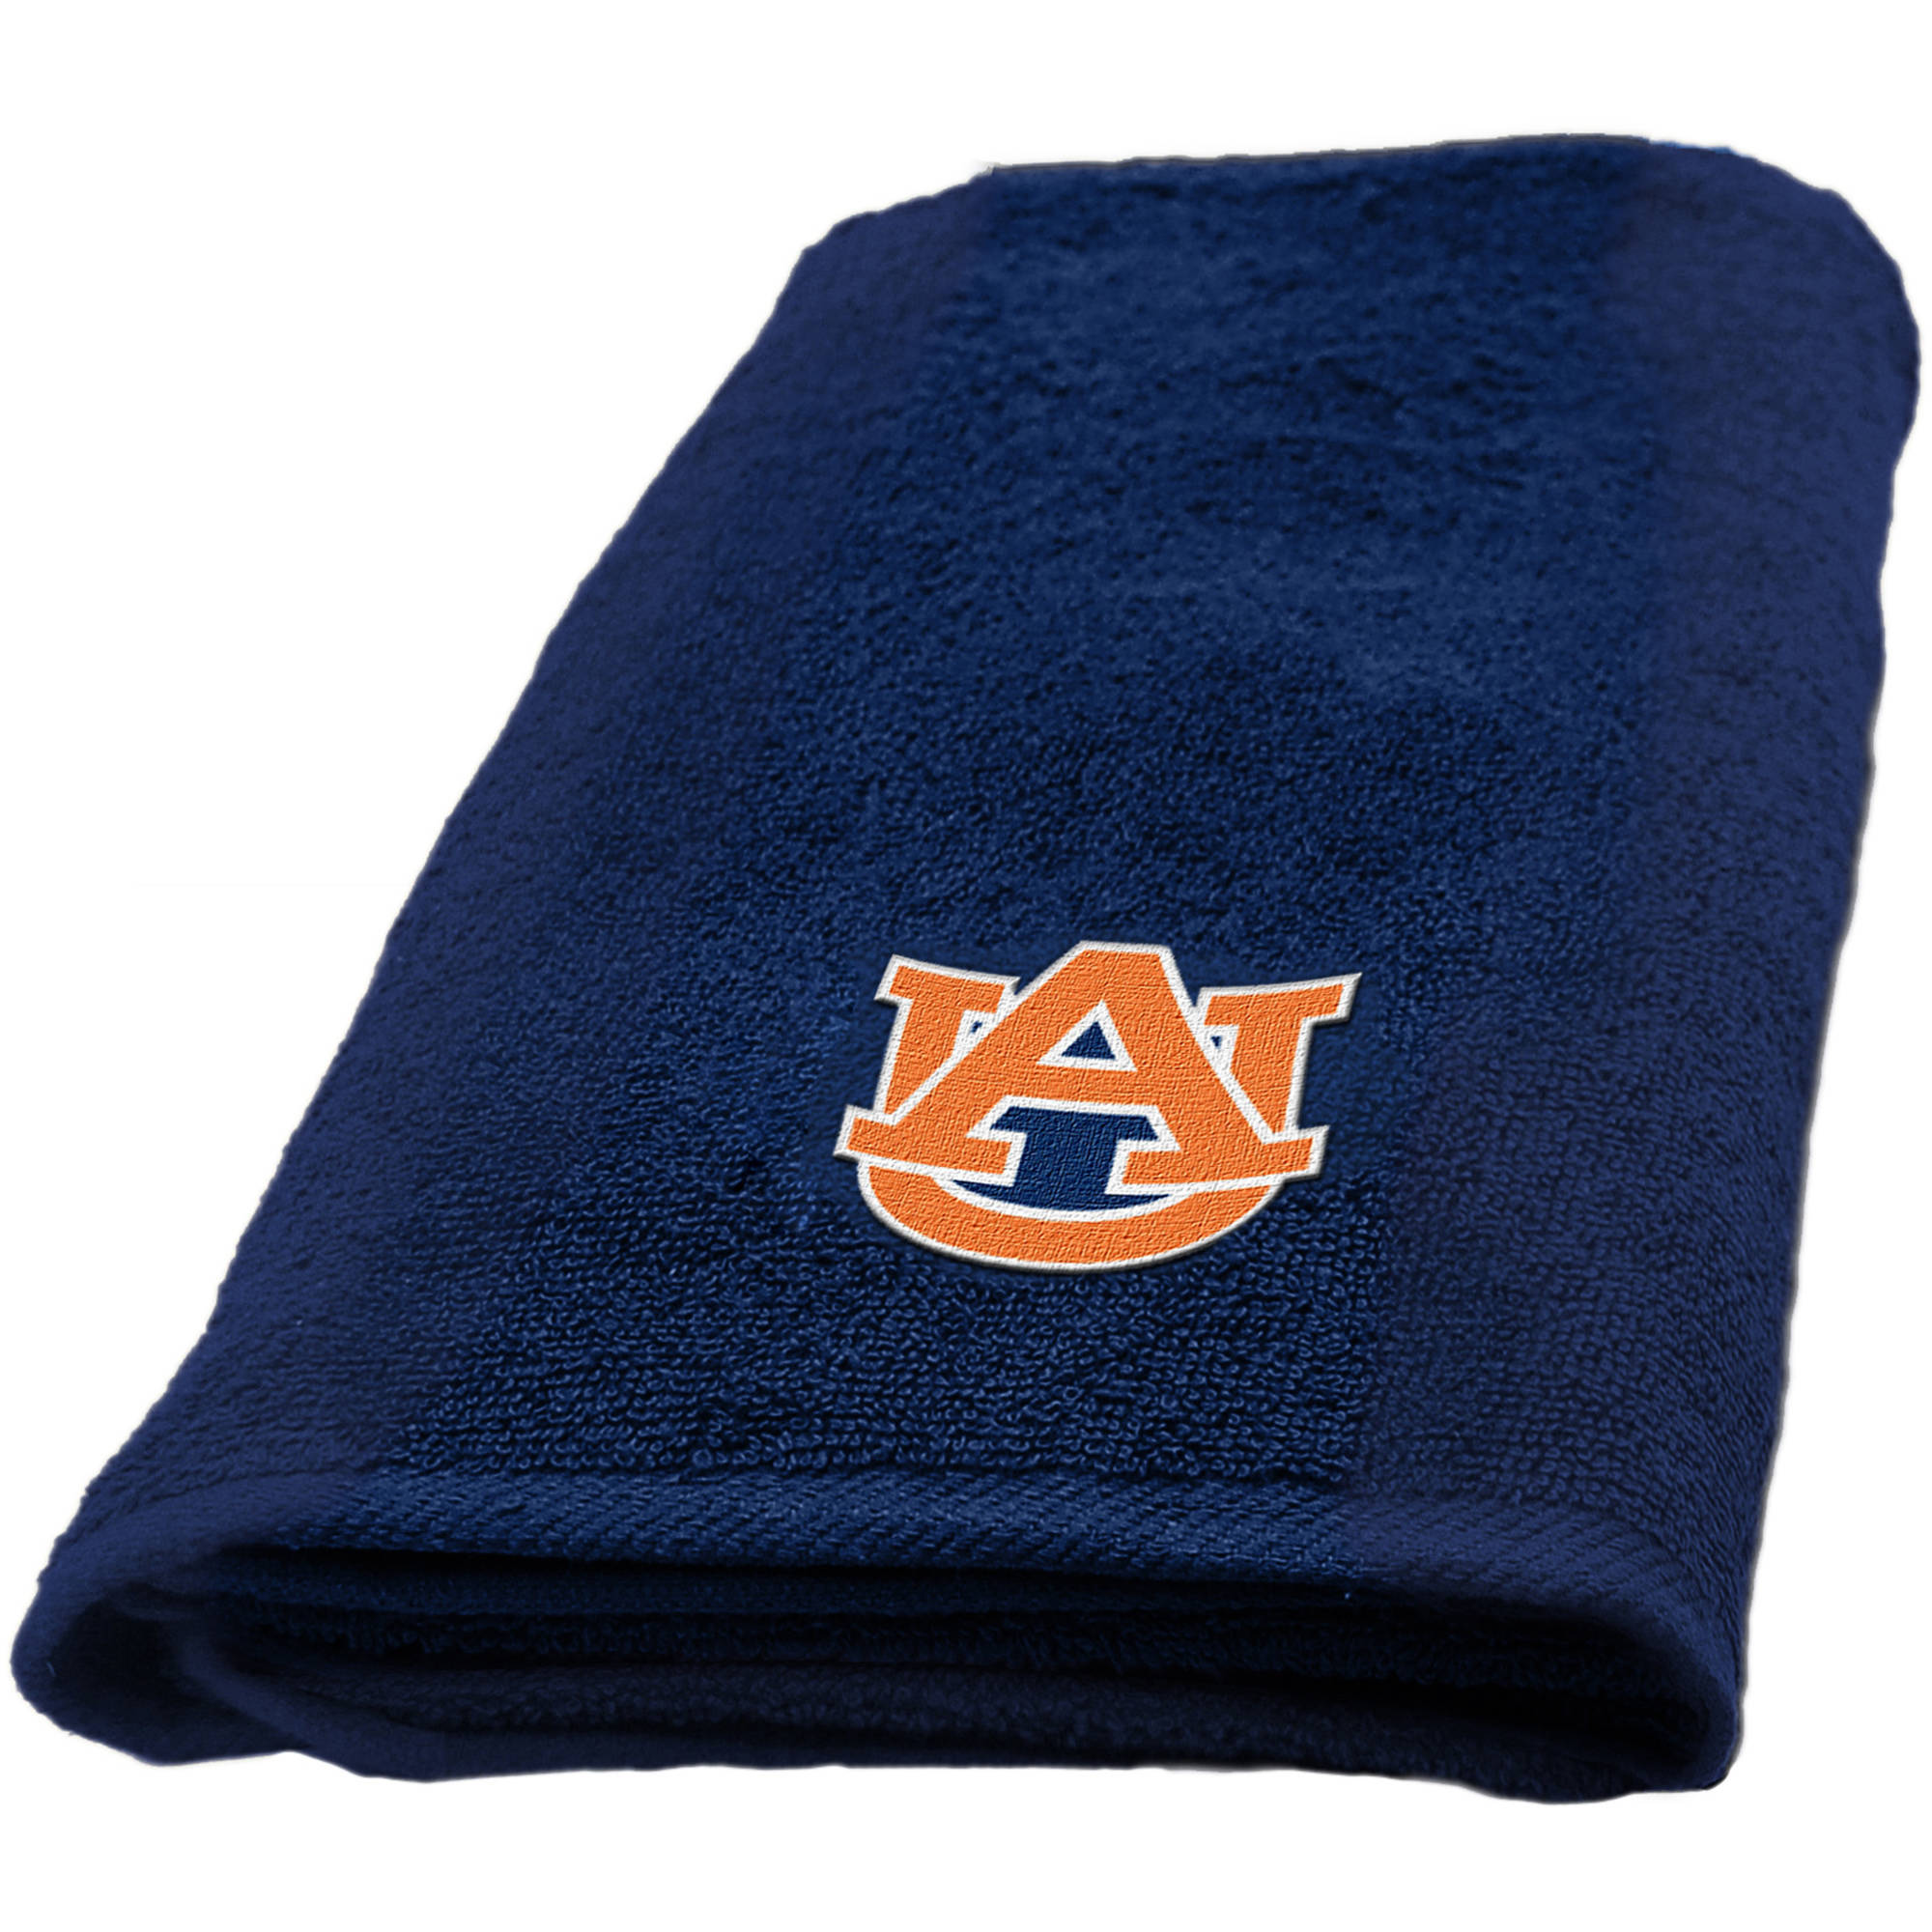 "NCAA Auburn Tigers 11""x18"" Applique Fingertip Towel"